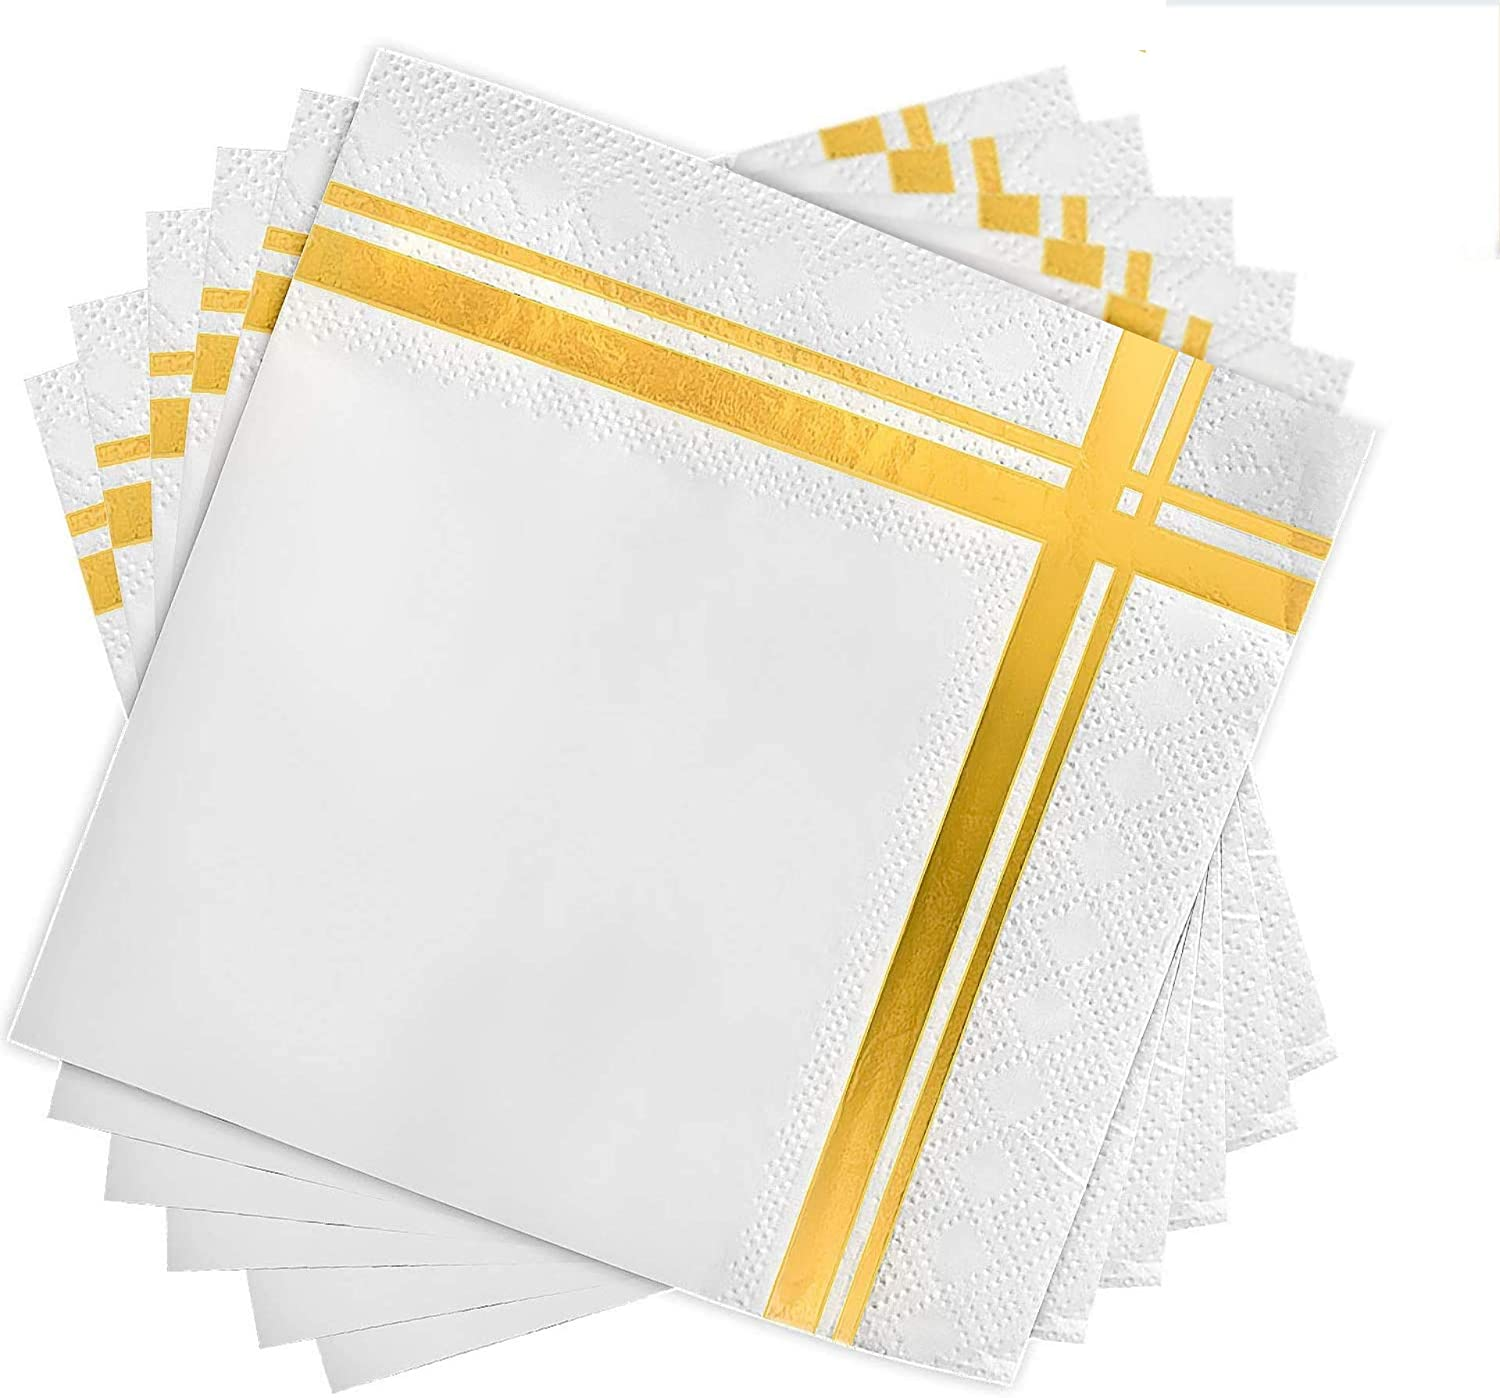 Fanxyware White and Gold Cocktail Napkins, 3-ply, 120 Pack, 5